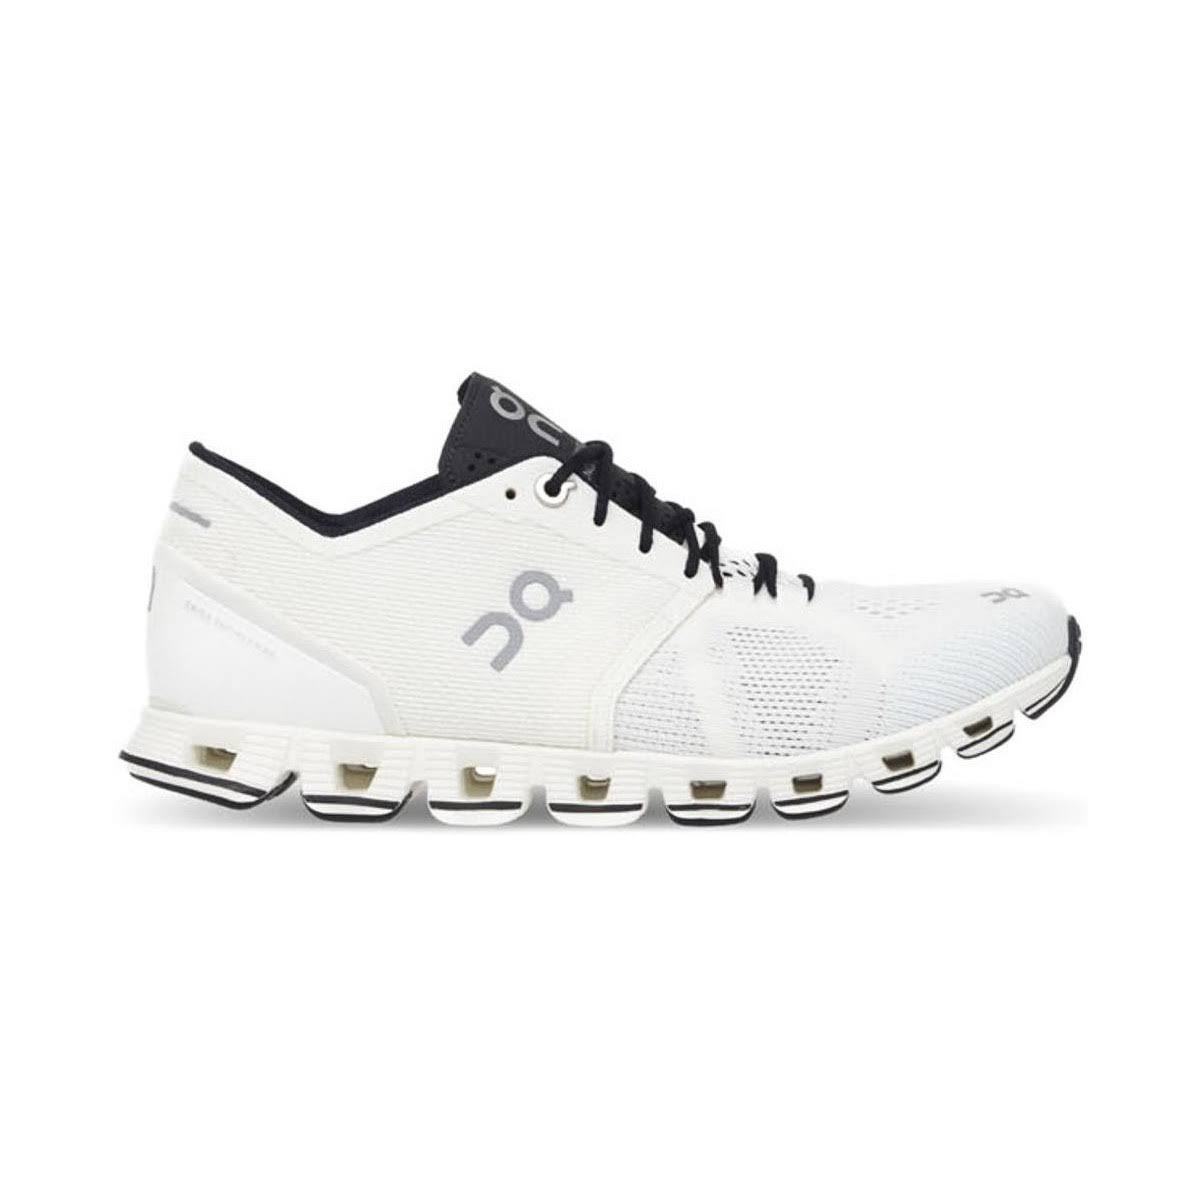 on Women's Cloud x Running Shoes White / Black 7